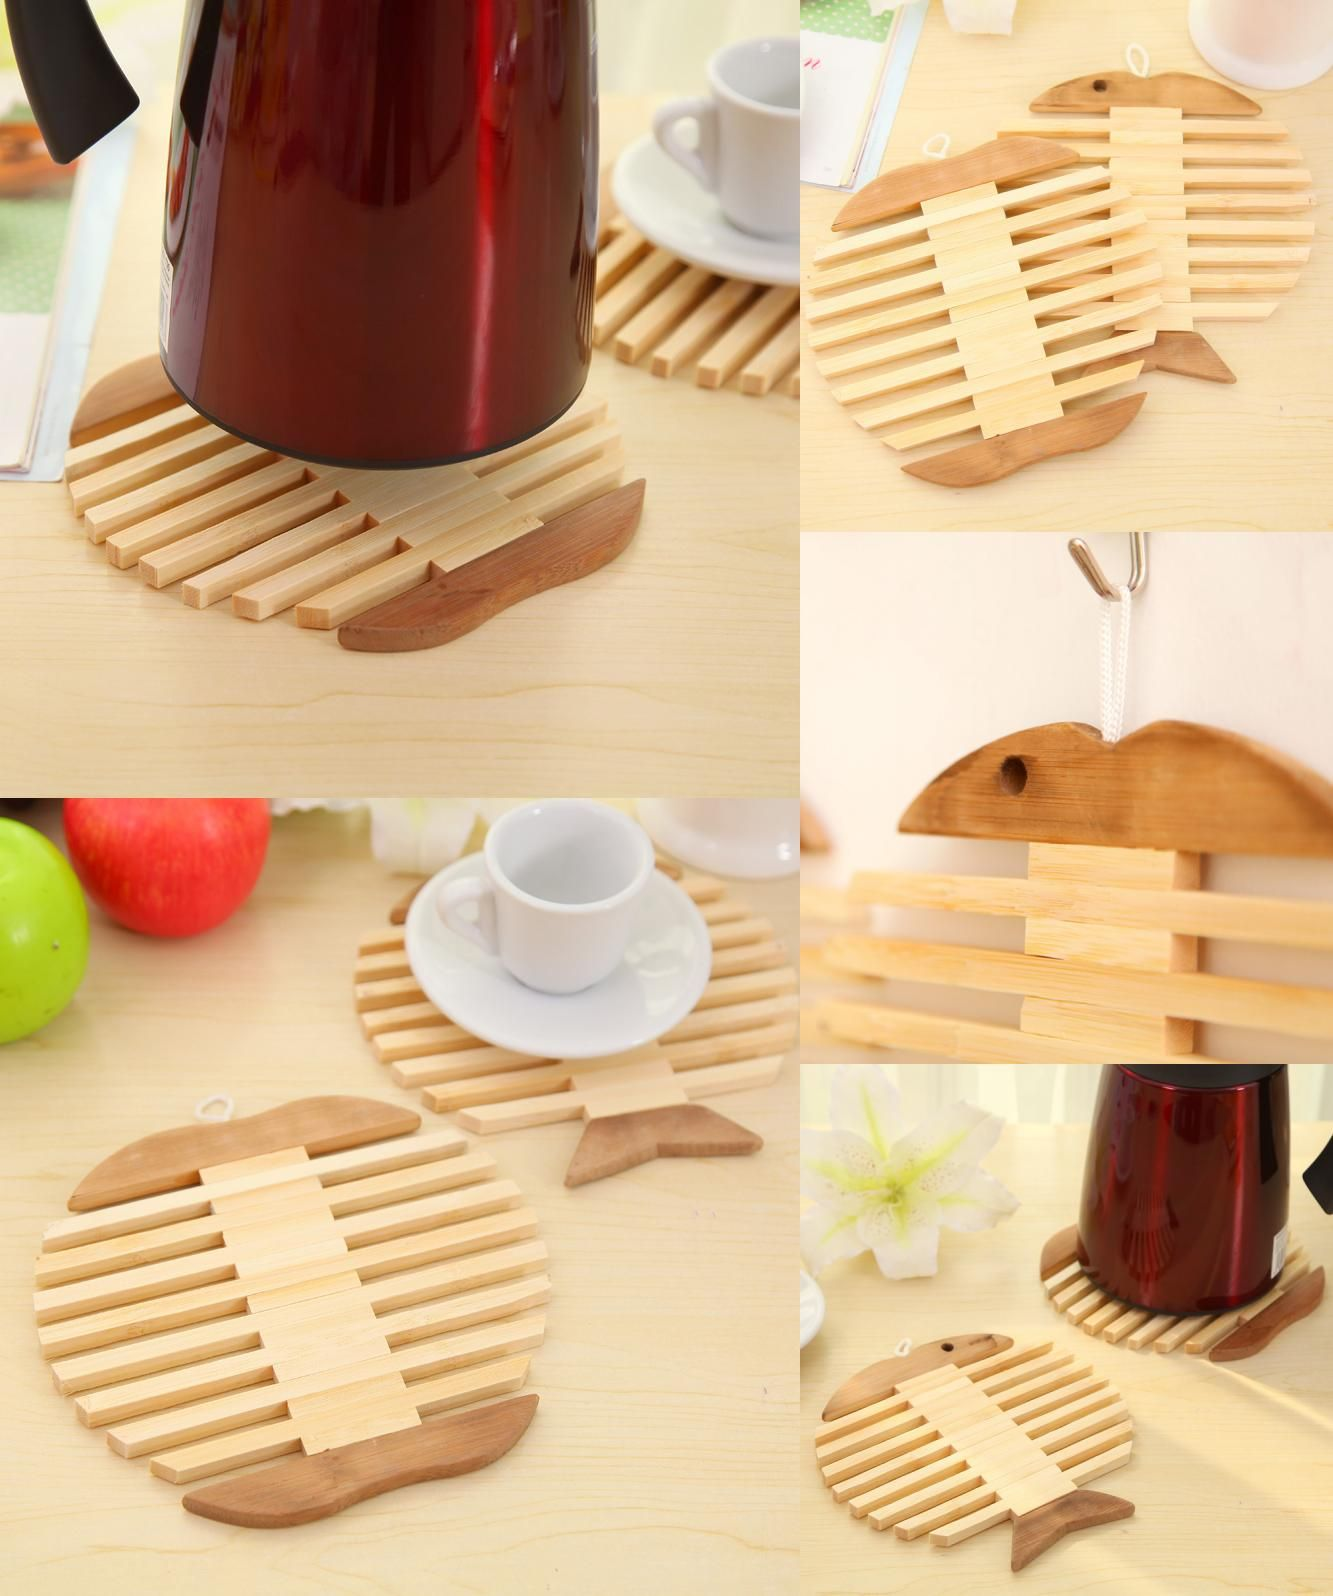 [Visit to Buy] Mat Q exquisite bamboo bowl kitchen pad Apple fish type  coasters cup holder insulated against hot tea pot mat